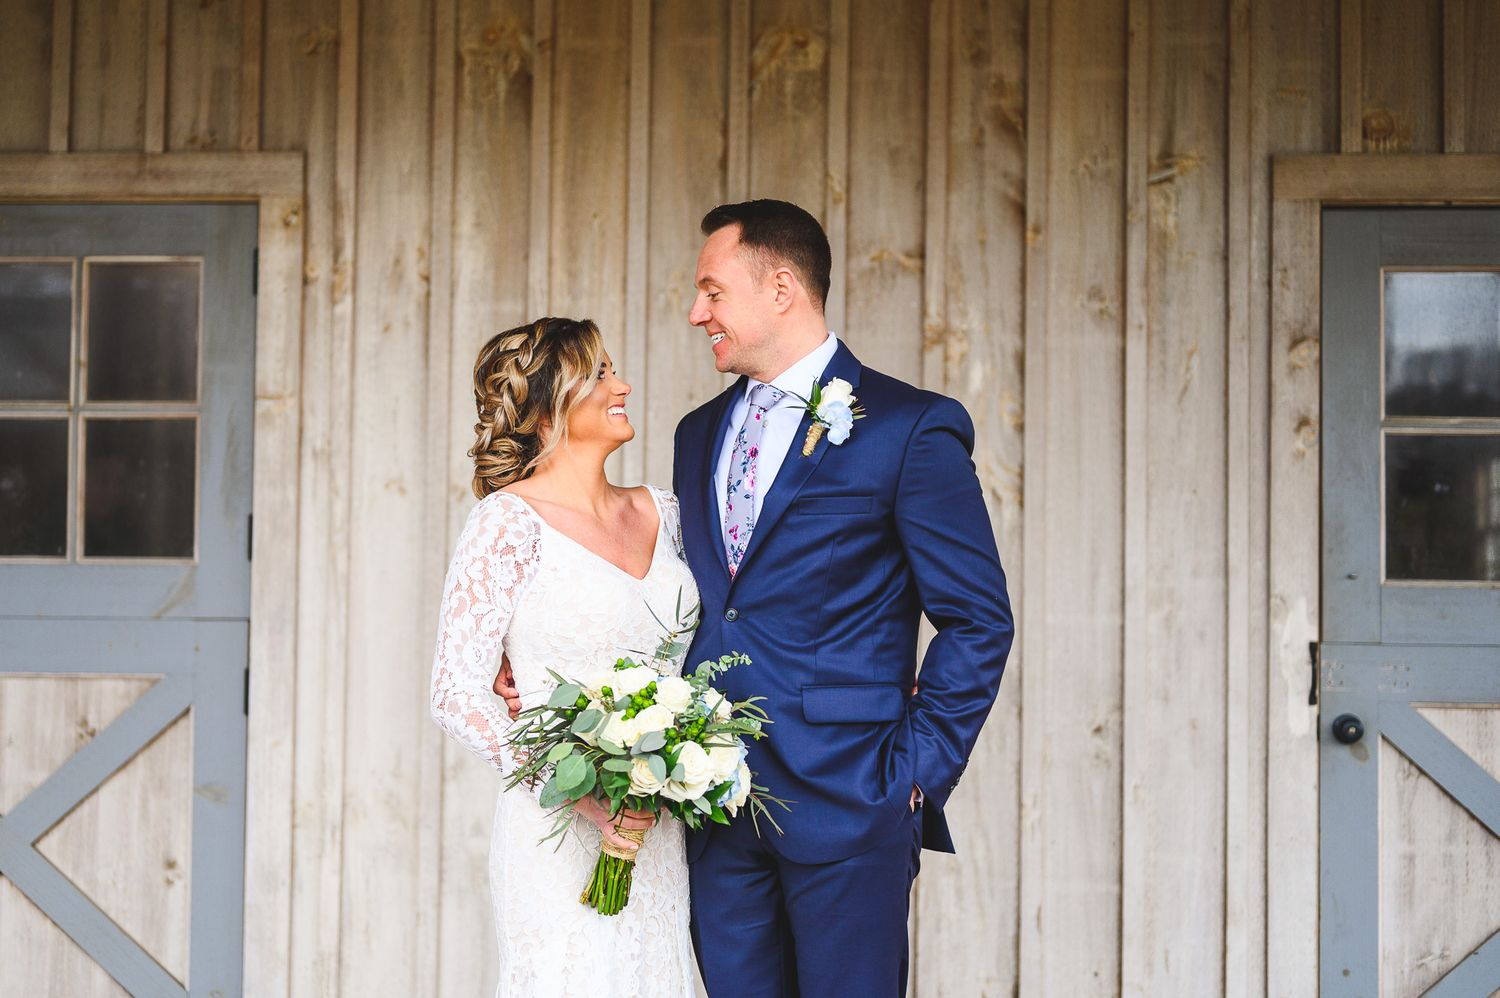 bride and groom smiling at each other in front of rustic barn